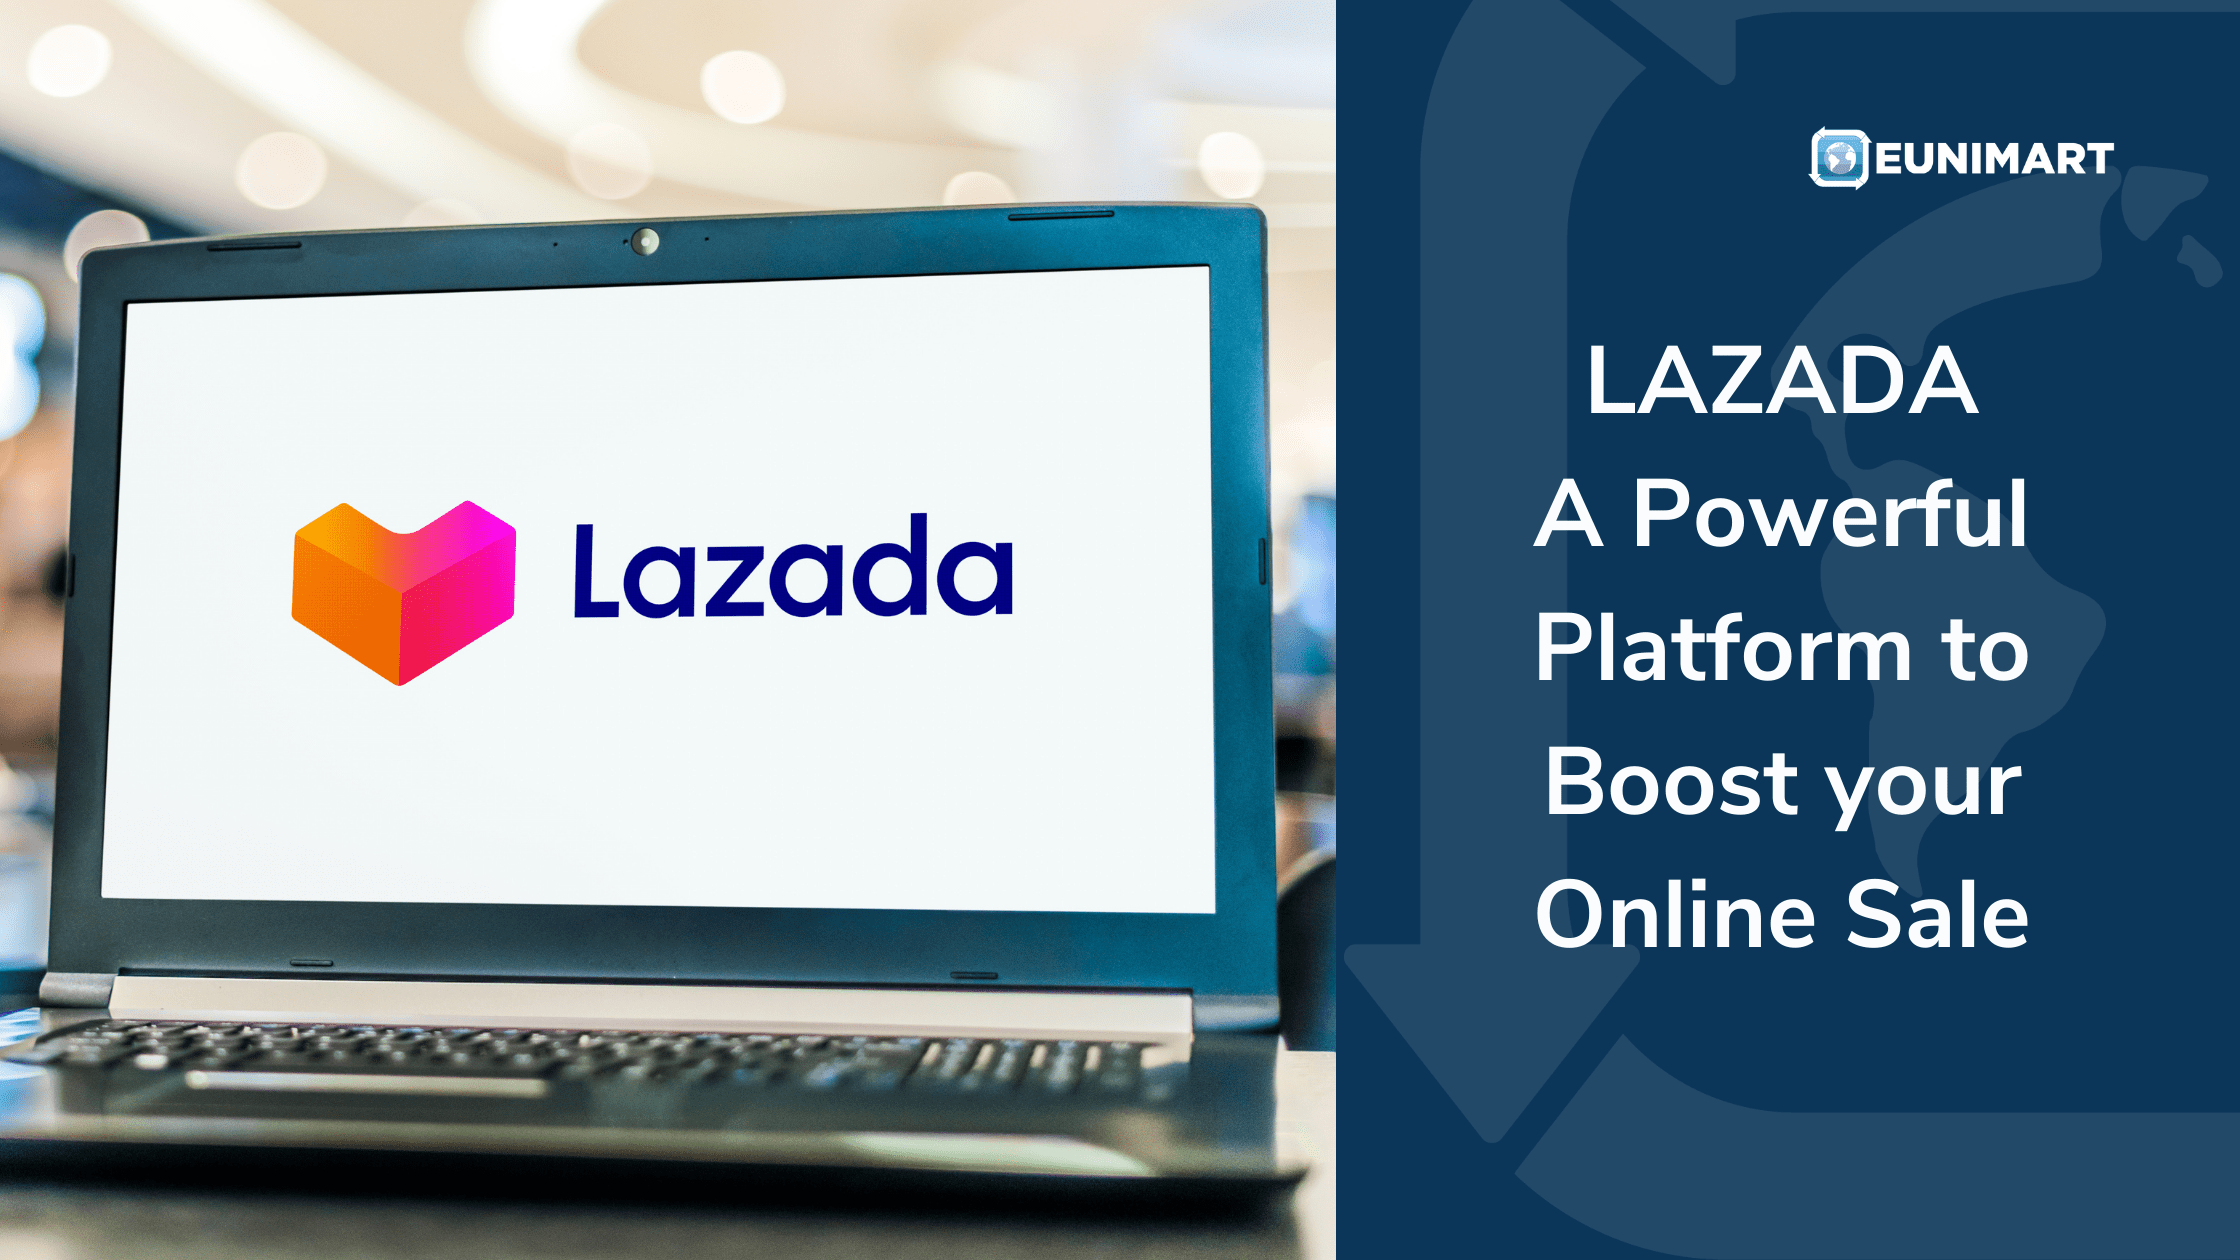 Lazada-A Powerful Platform to Boost your Online Sale